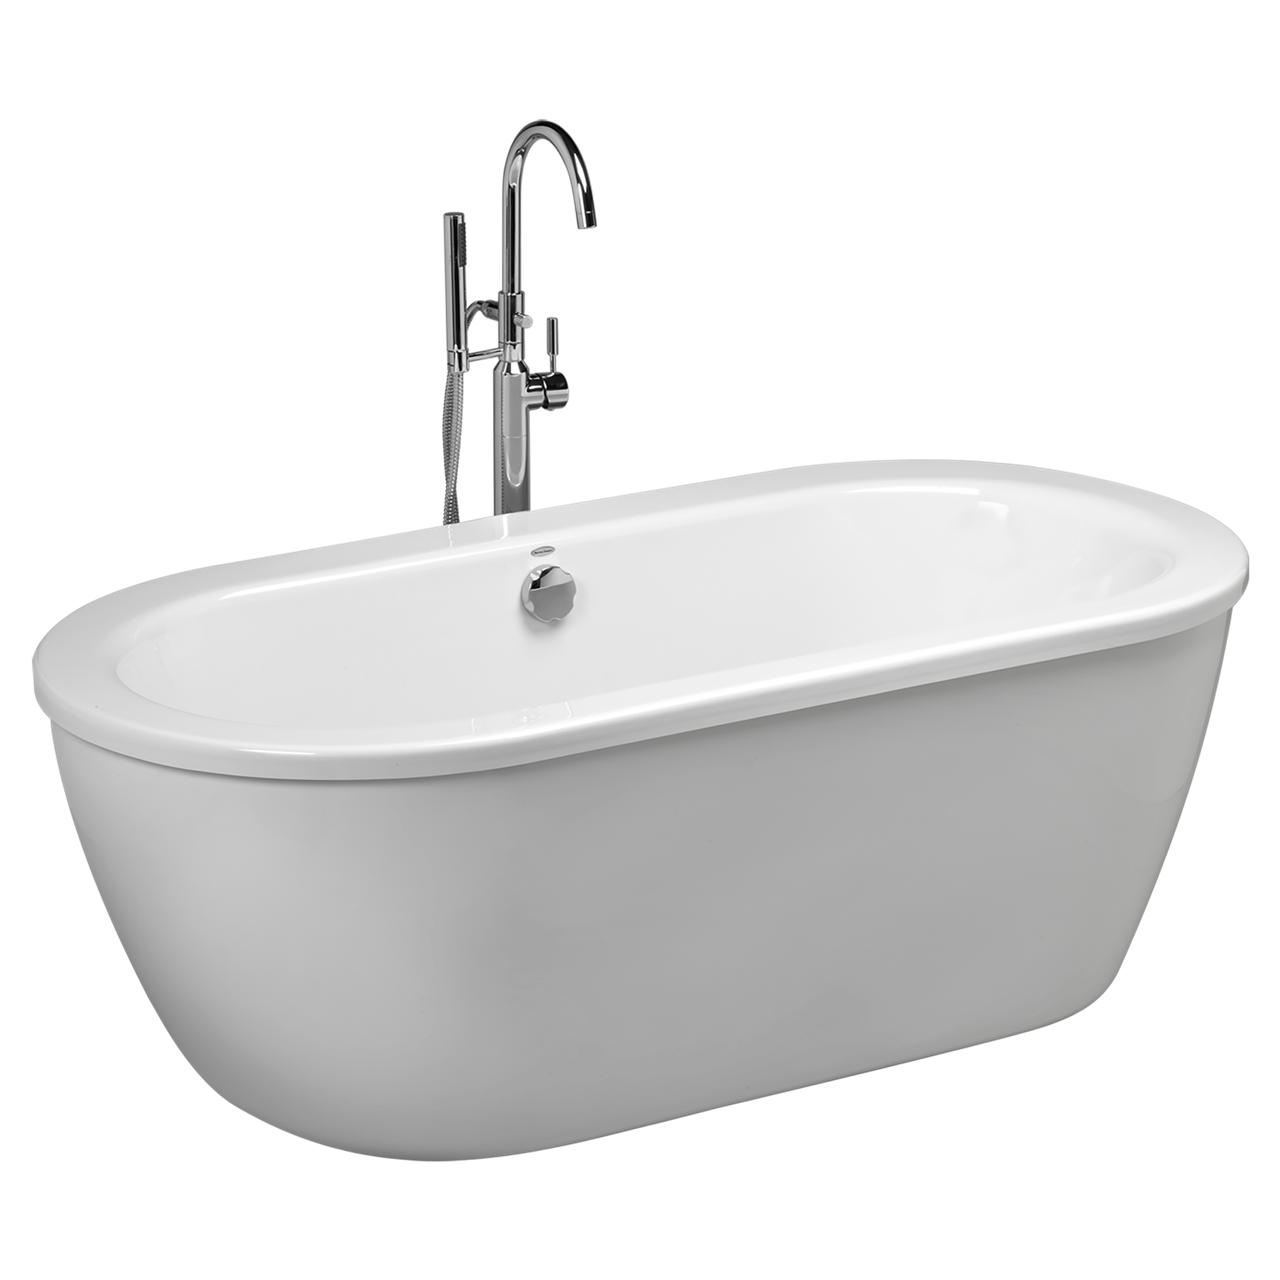 Bathtubs - Cadet Freestanding Tub - Arctic - Bathtub PNG HD